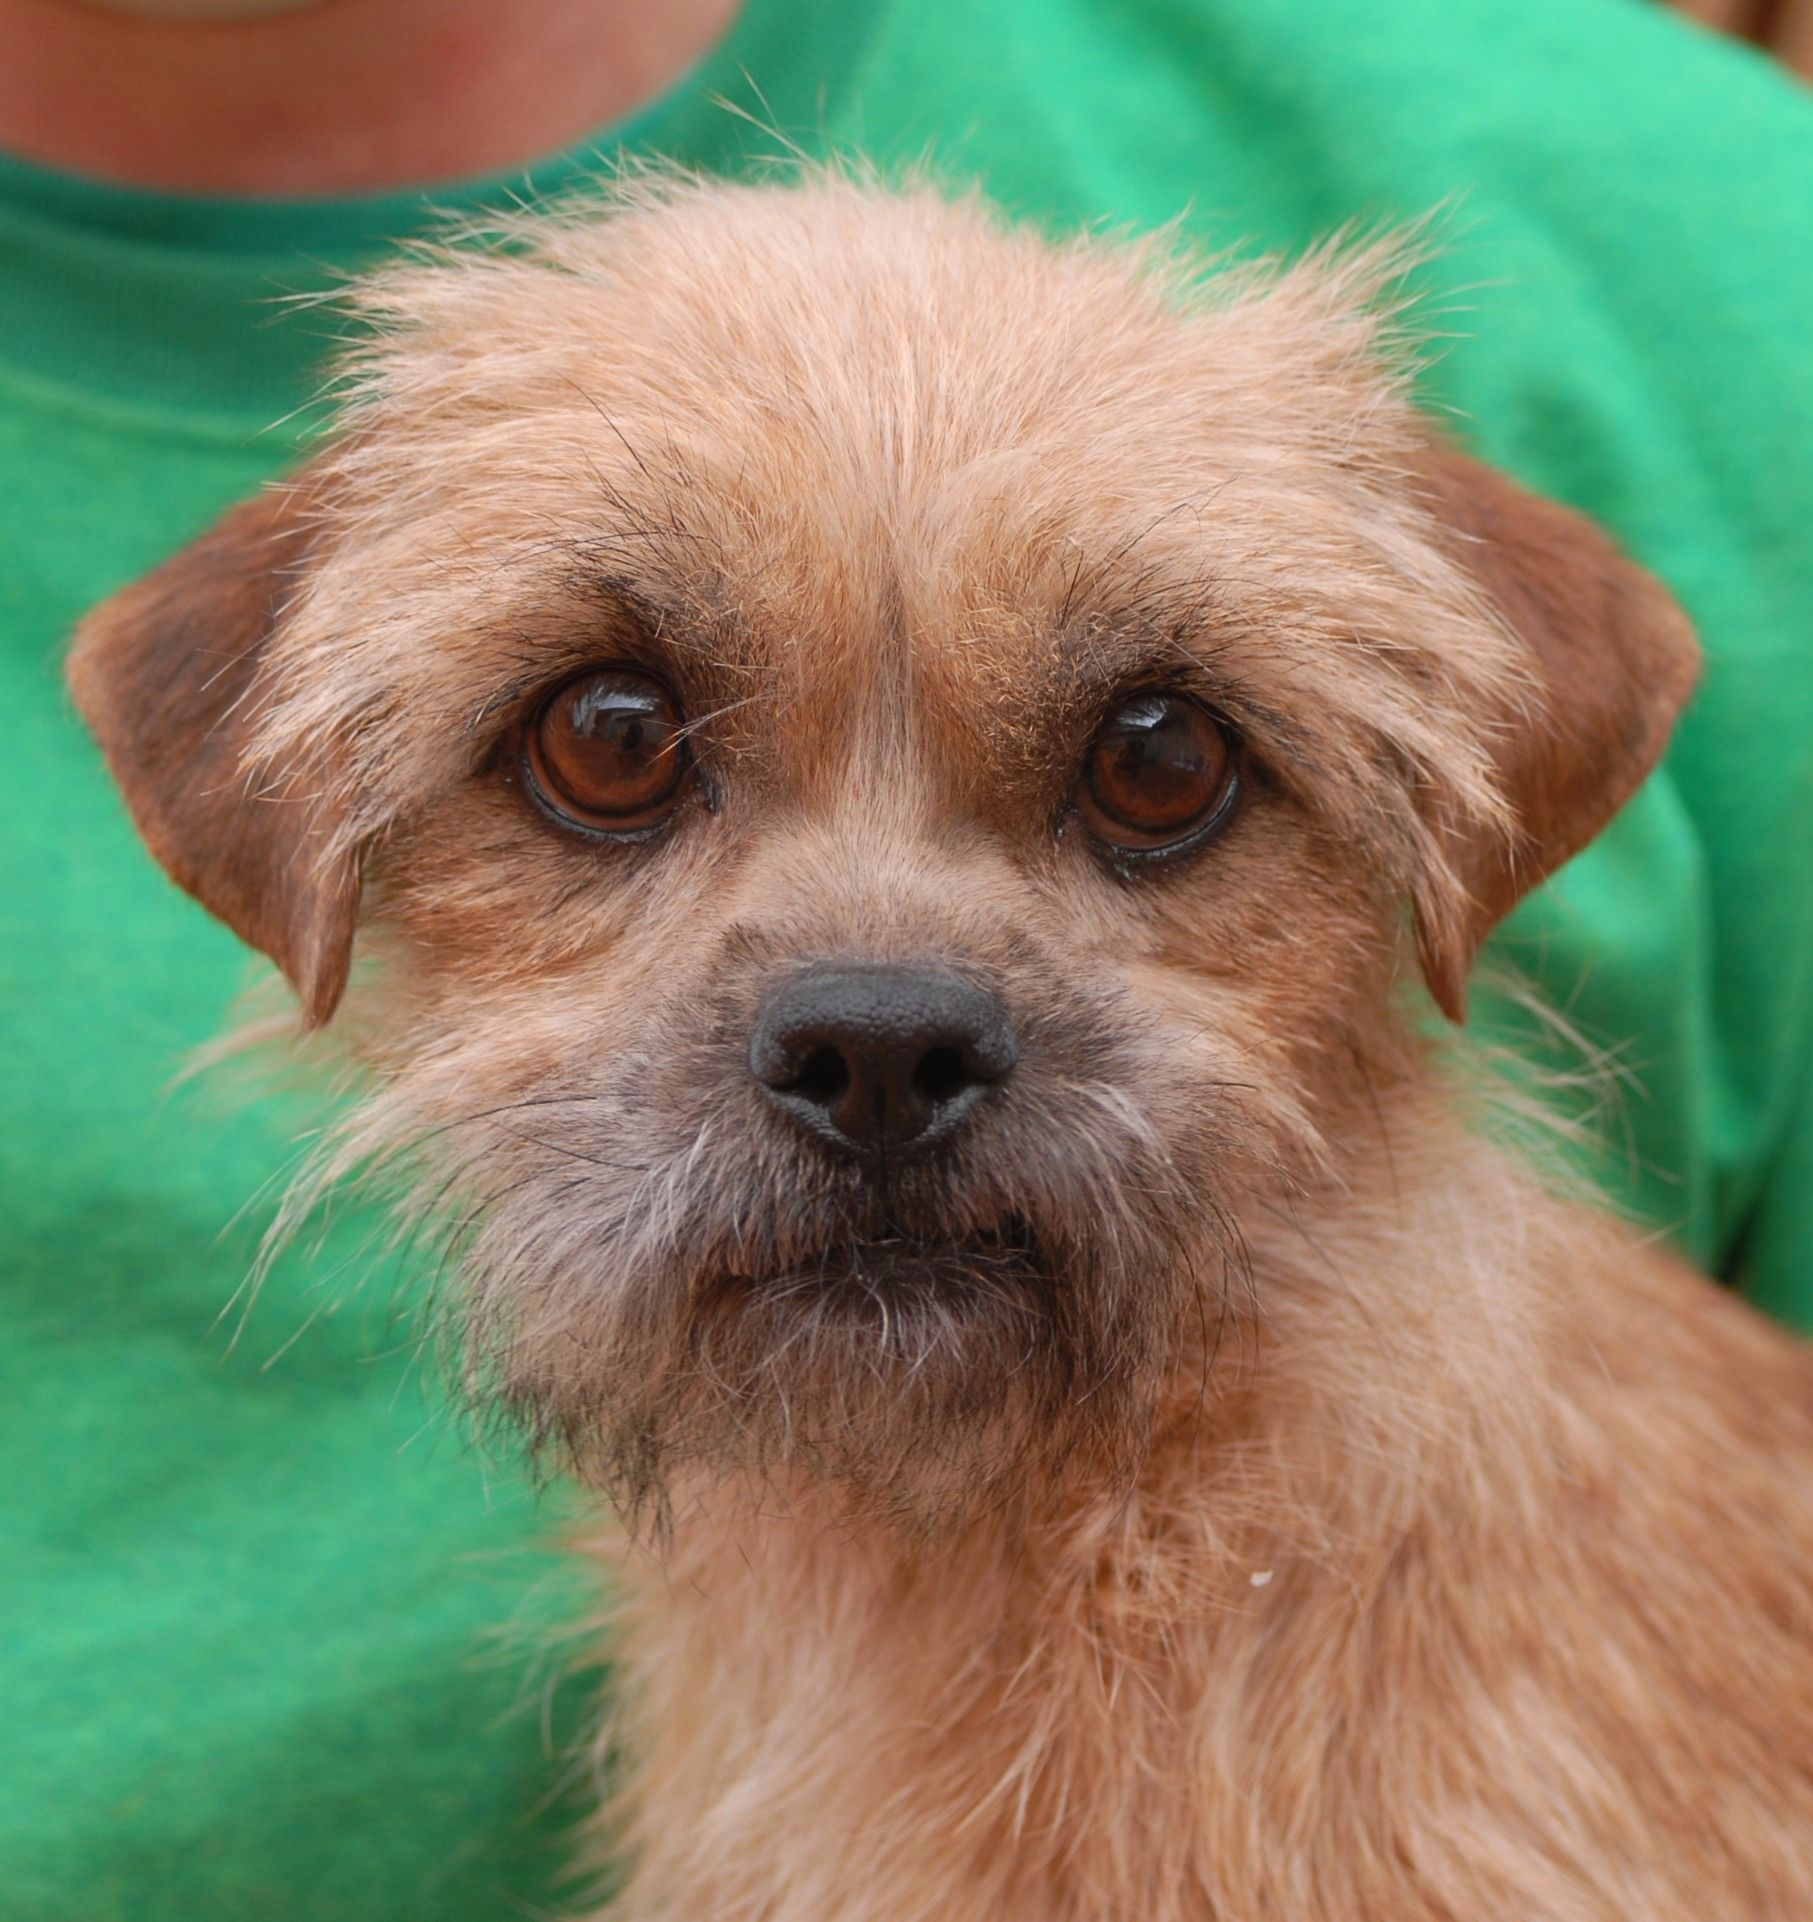 Jade S Big Eyes Express Her Emotions Vividly And Melt Our Hearts She Is A Young Charming Brussels Griffon Shih T Dogs And Kids Dog Adoption Beautiful Dogs